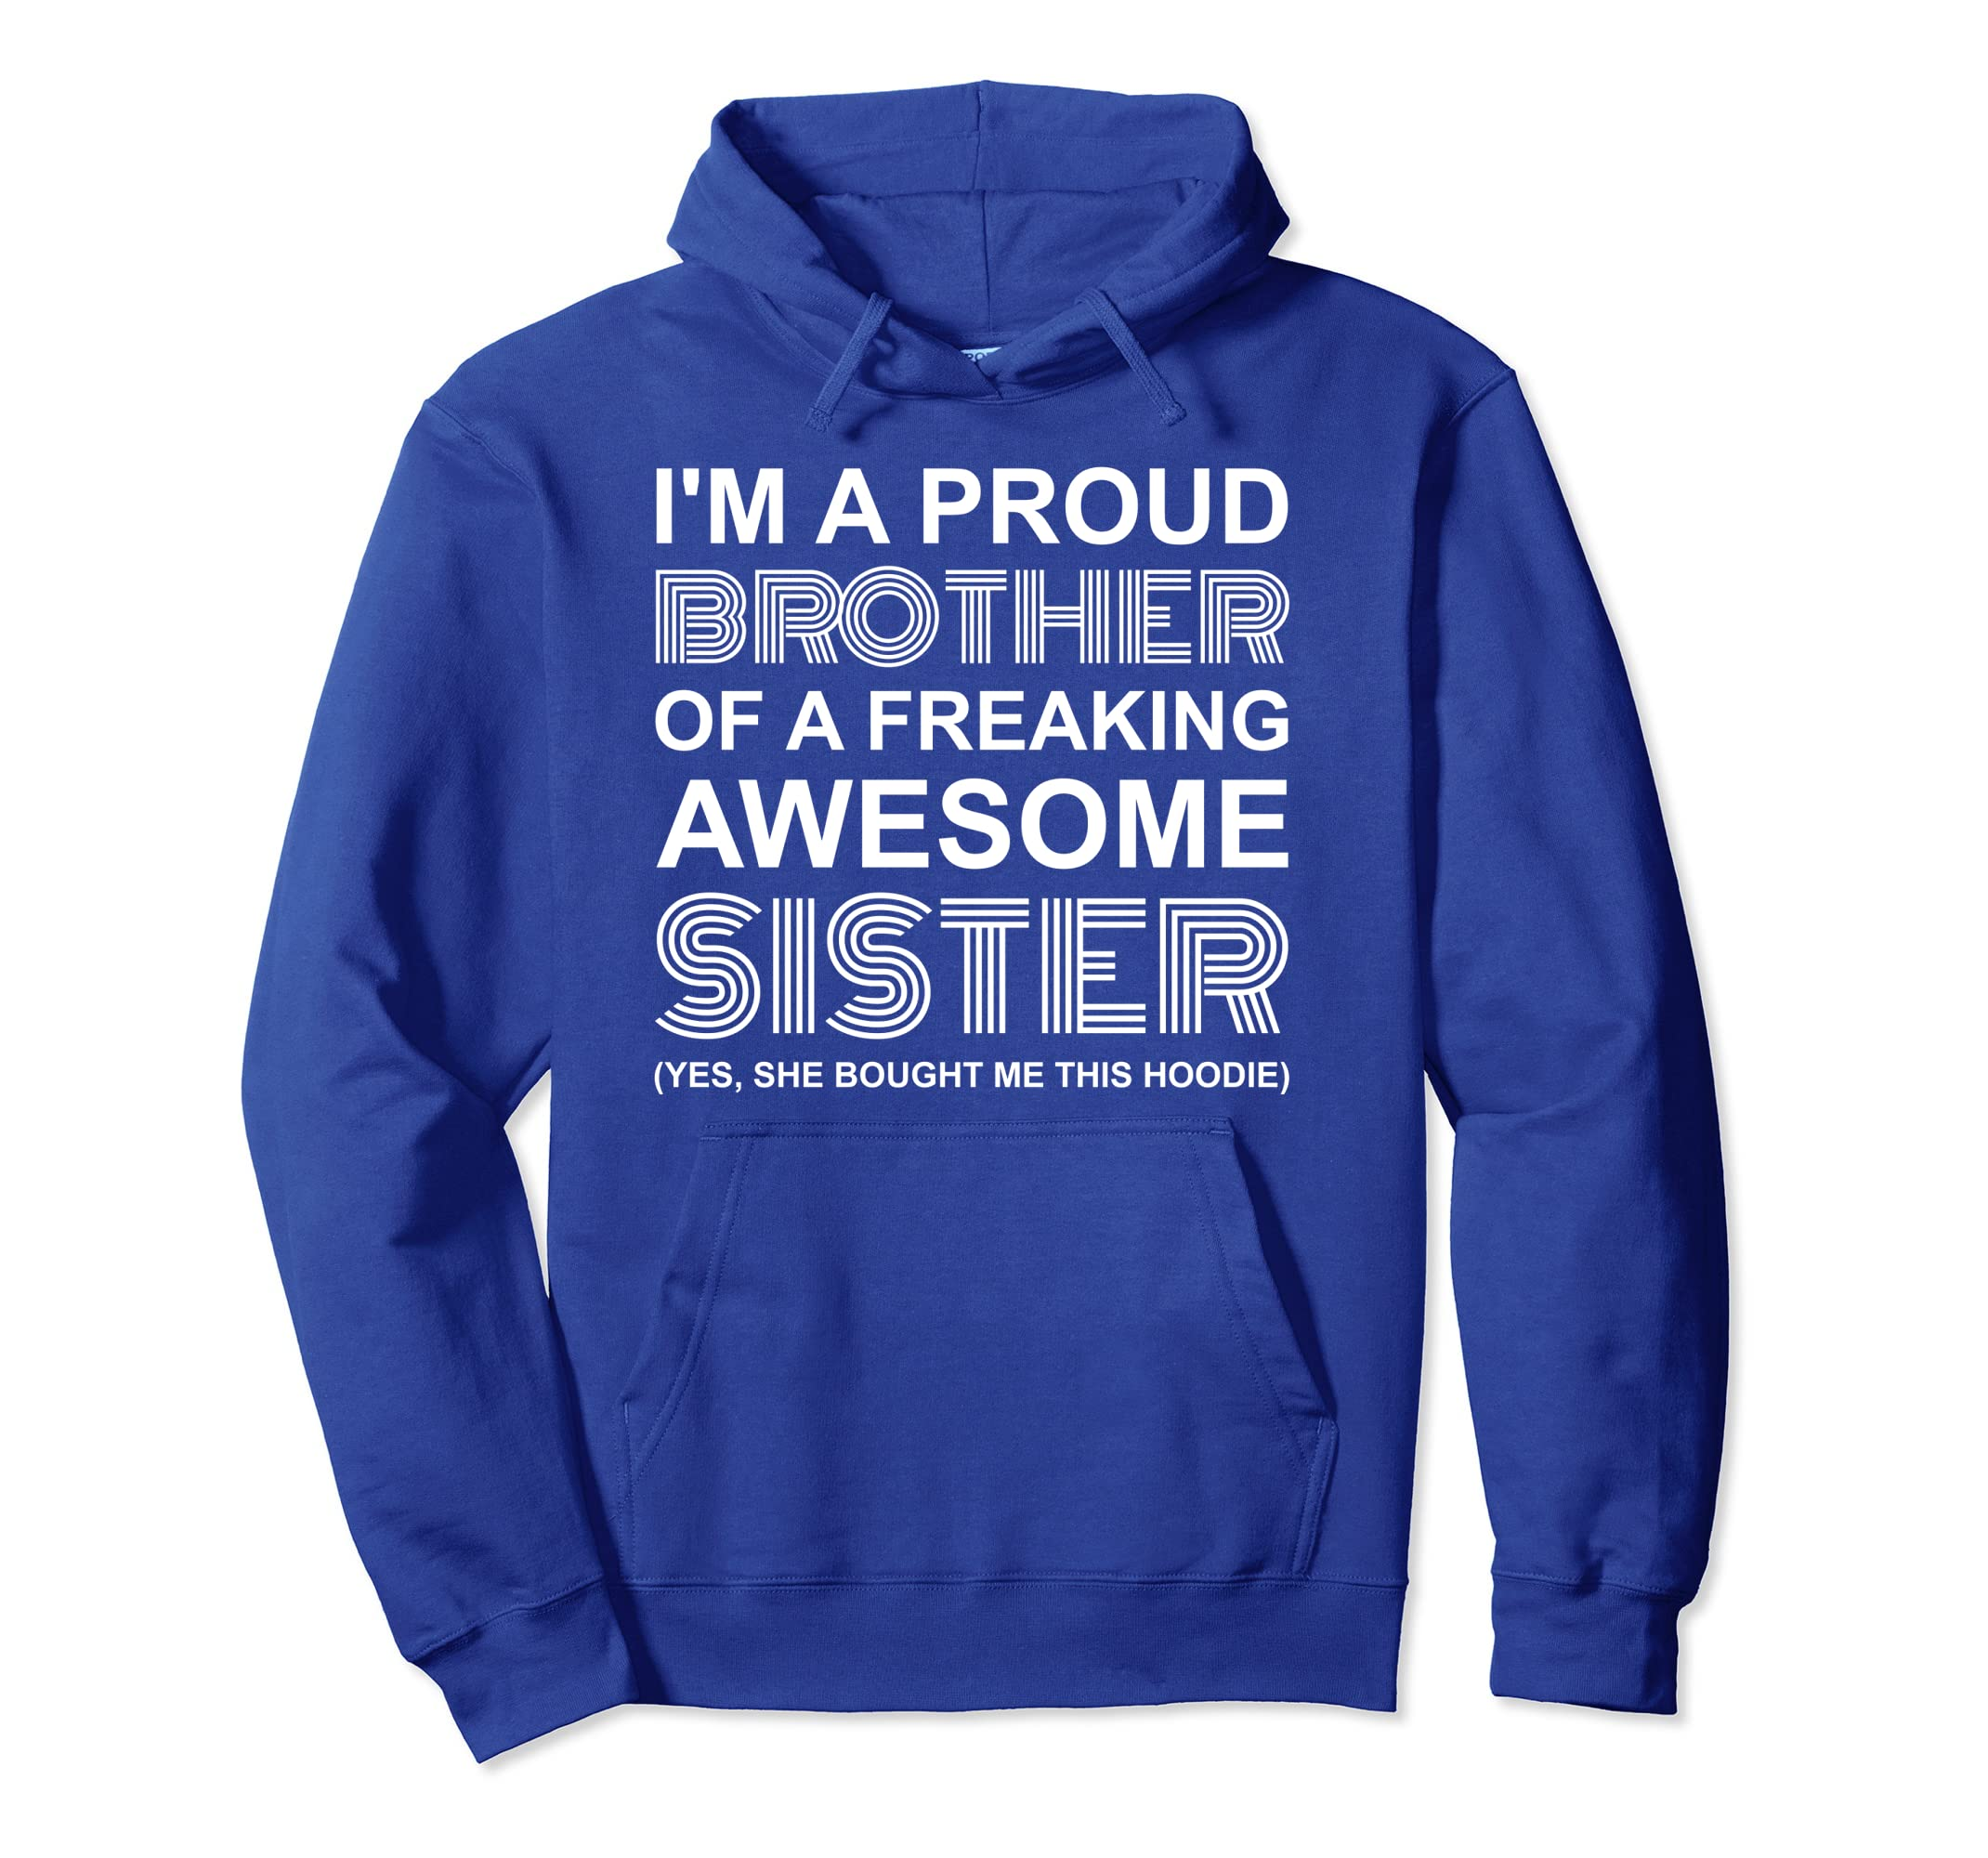 I'm A Proud Brother Of A Freaking Awesome Sister Hoodie-Teechatpro